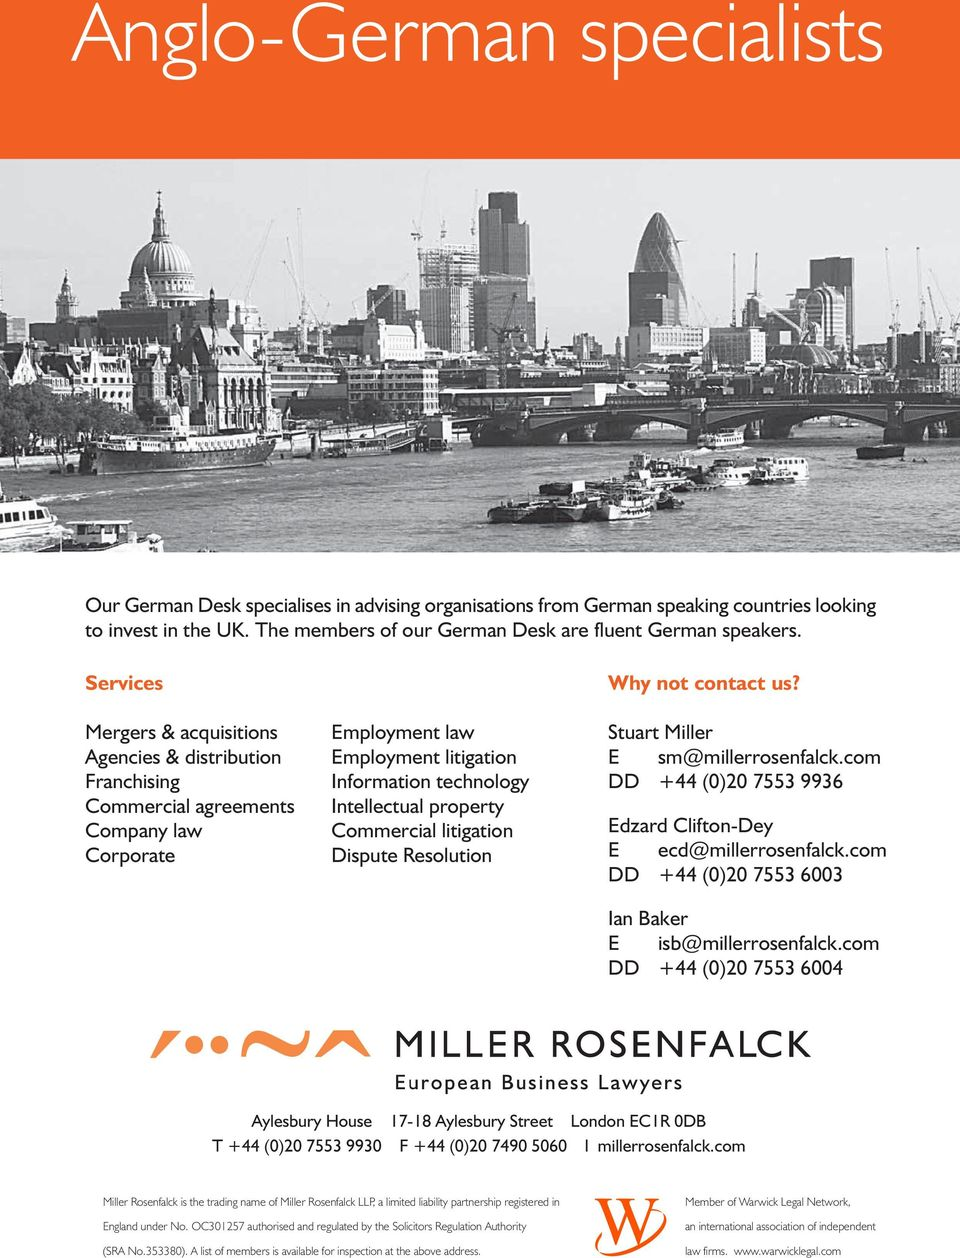 Commercial litigation Dispute Resolution Why not contact us? Stuart Miller E sm@millerrosenfalck.com DD +44 (0)20 7553 9936 Edzard Clifton-Dey E ecd@millerrosenfalck.